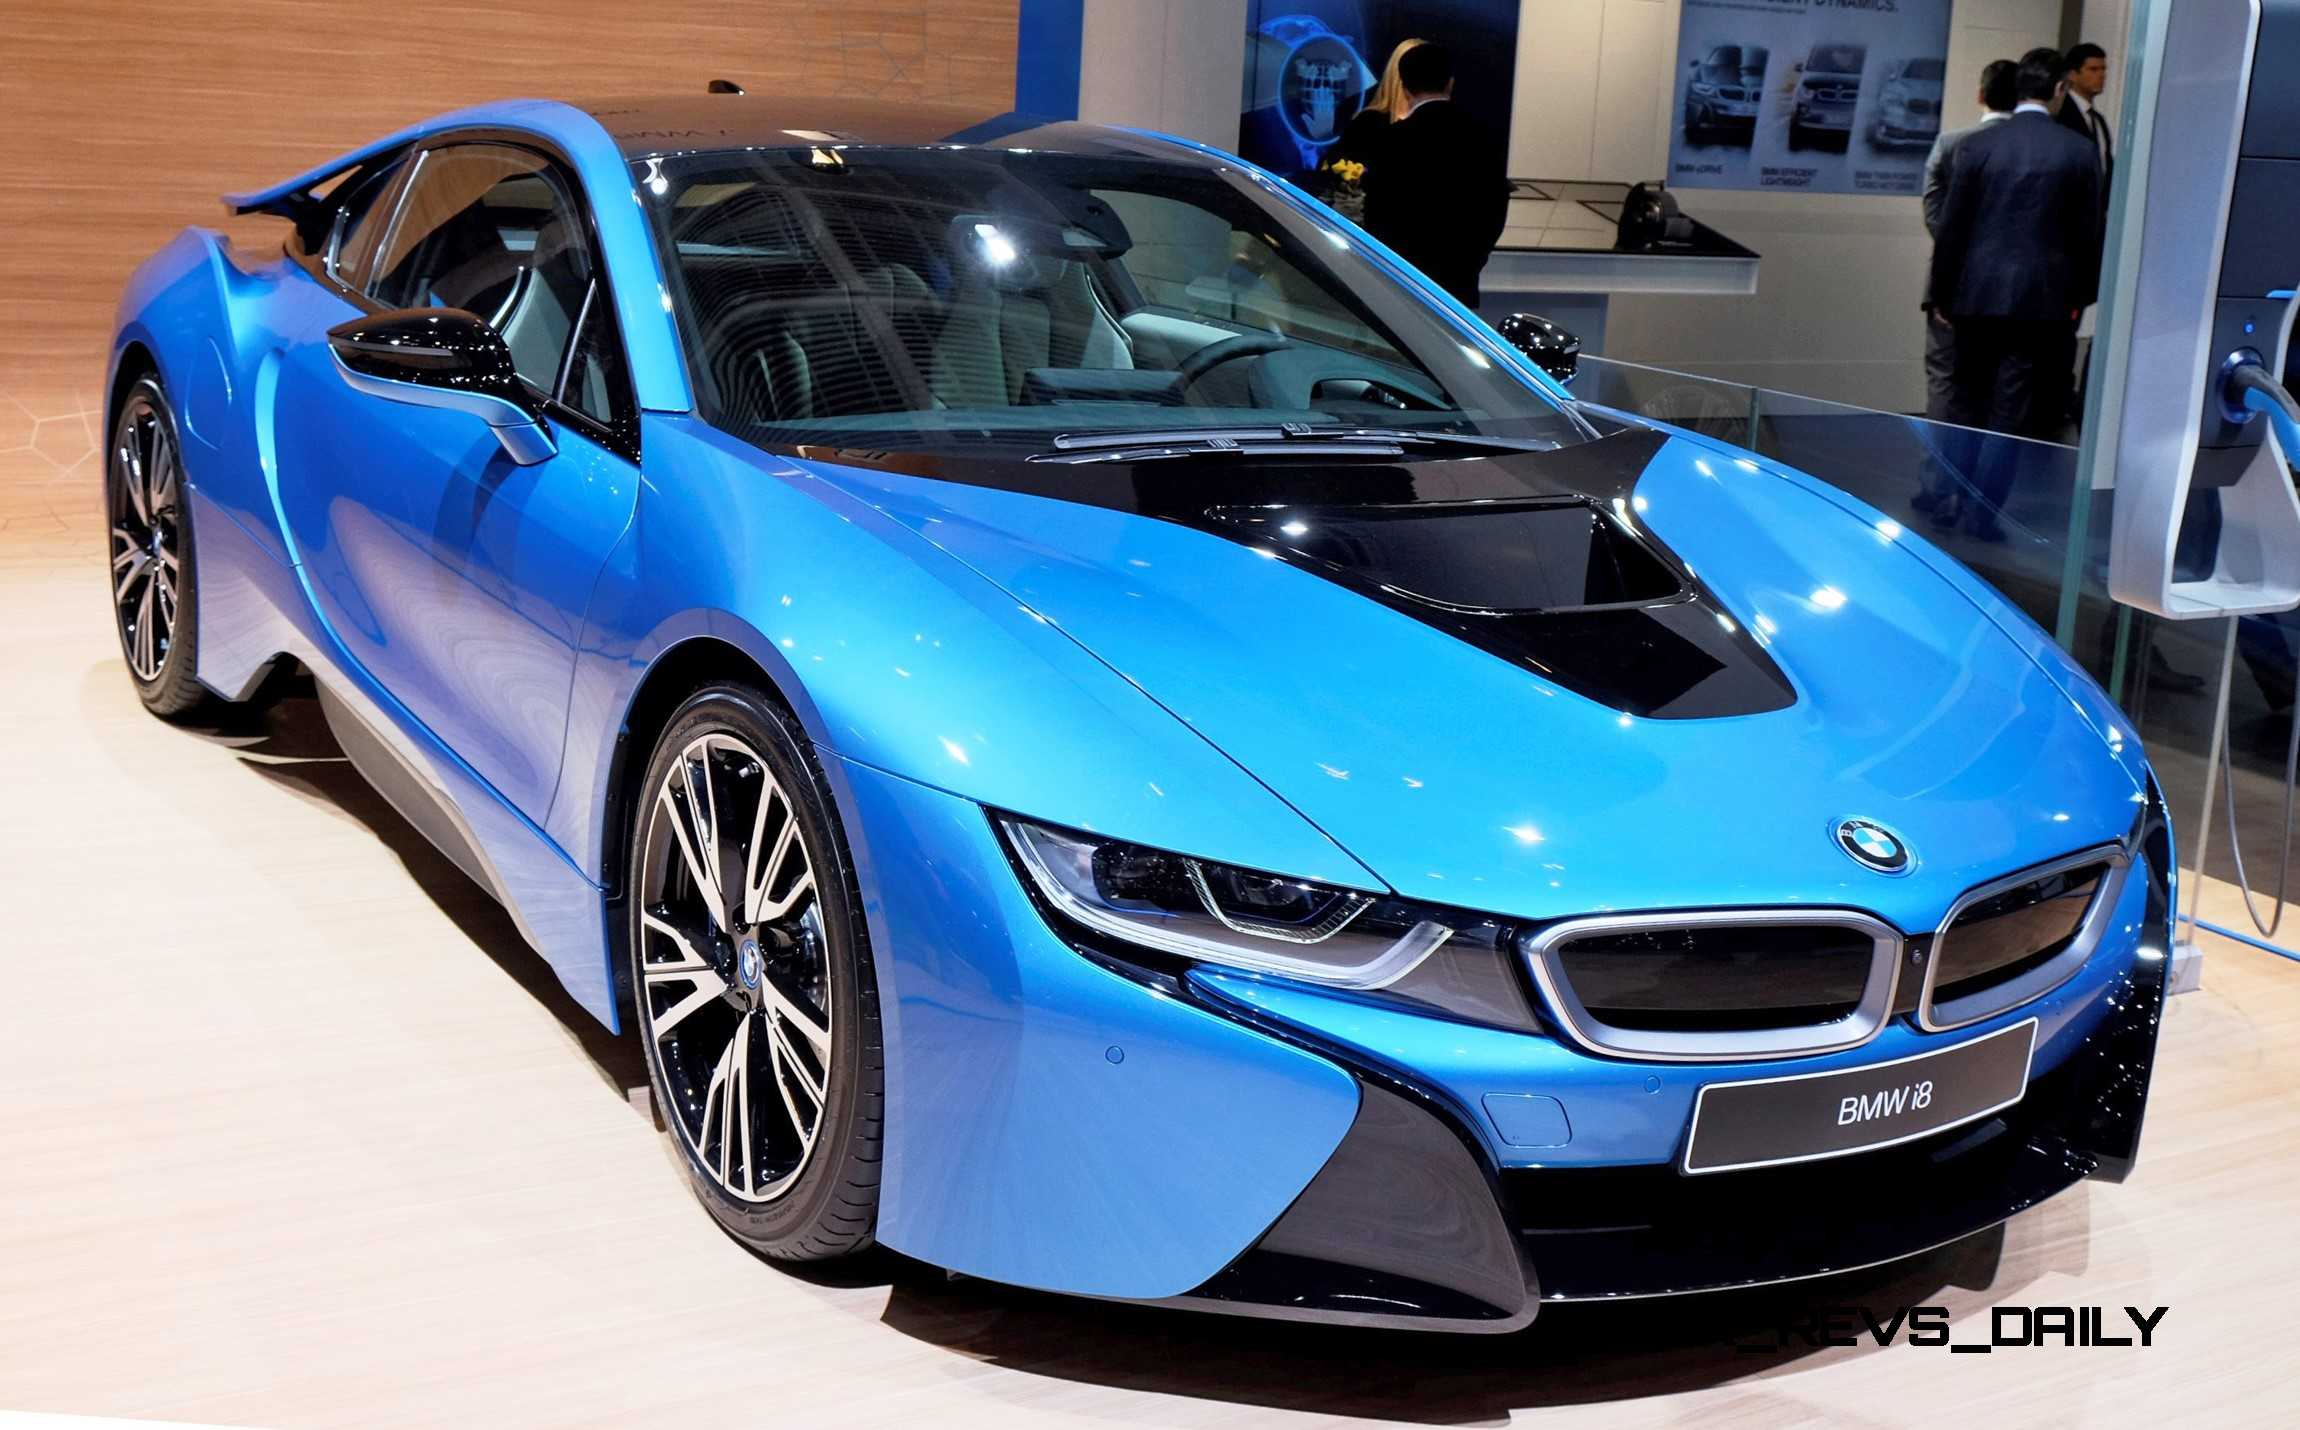 geneva 2015 gallery bmw stand in 40 photos 11. Black Bedroom Furniture Sets. Home Design Ideas